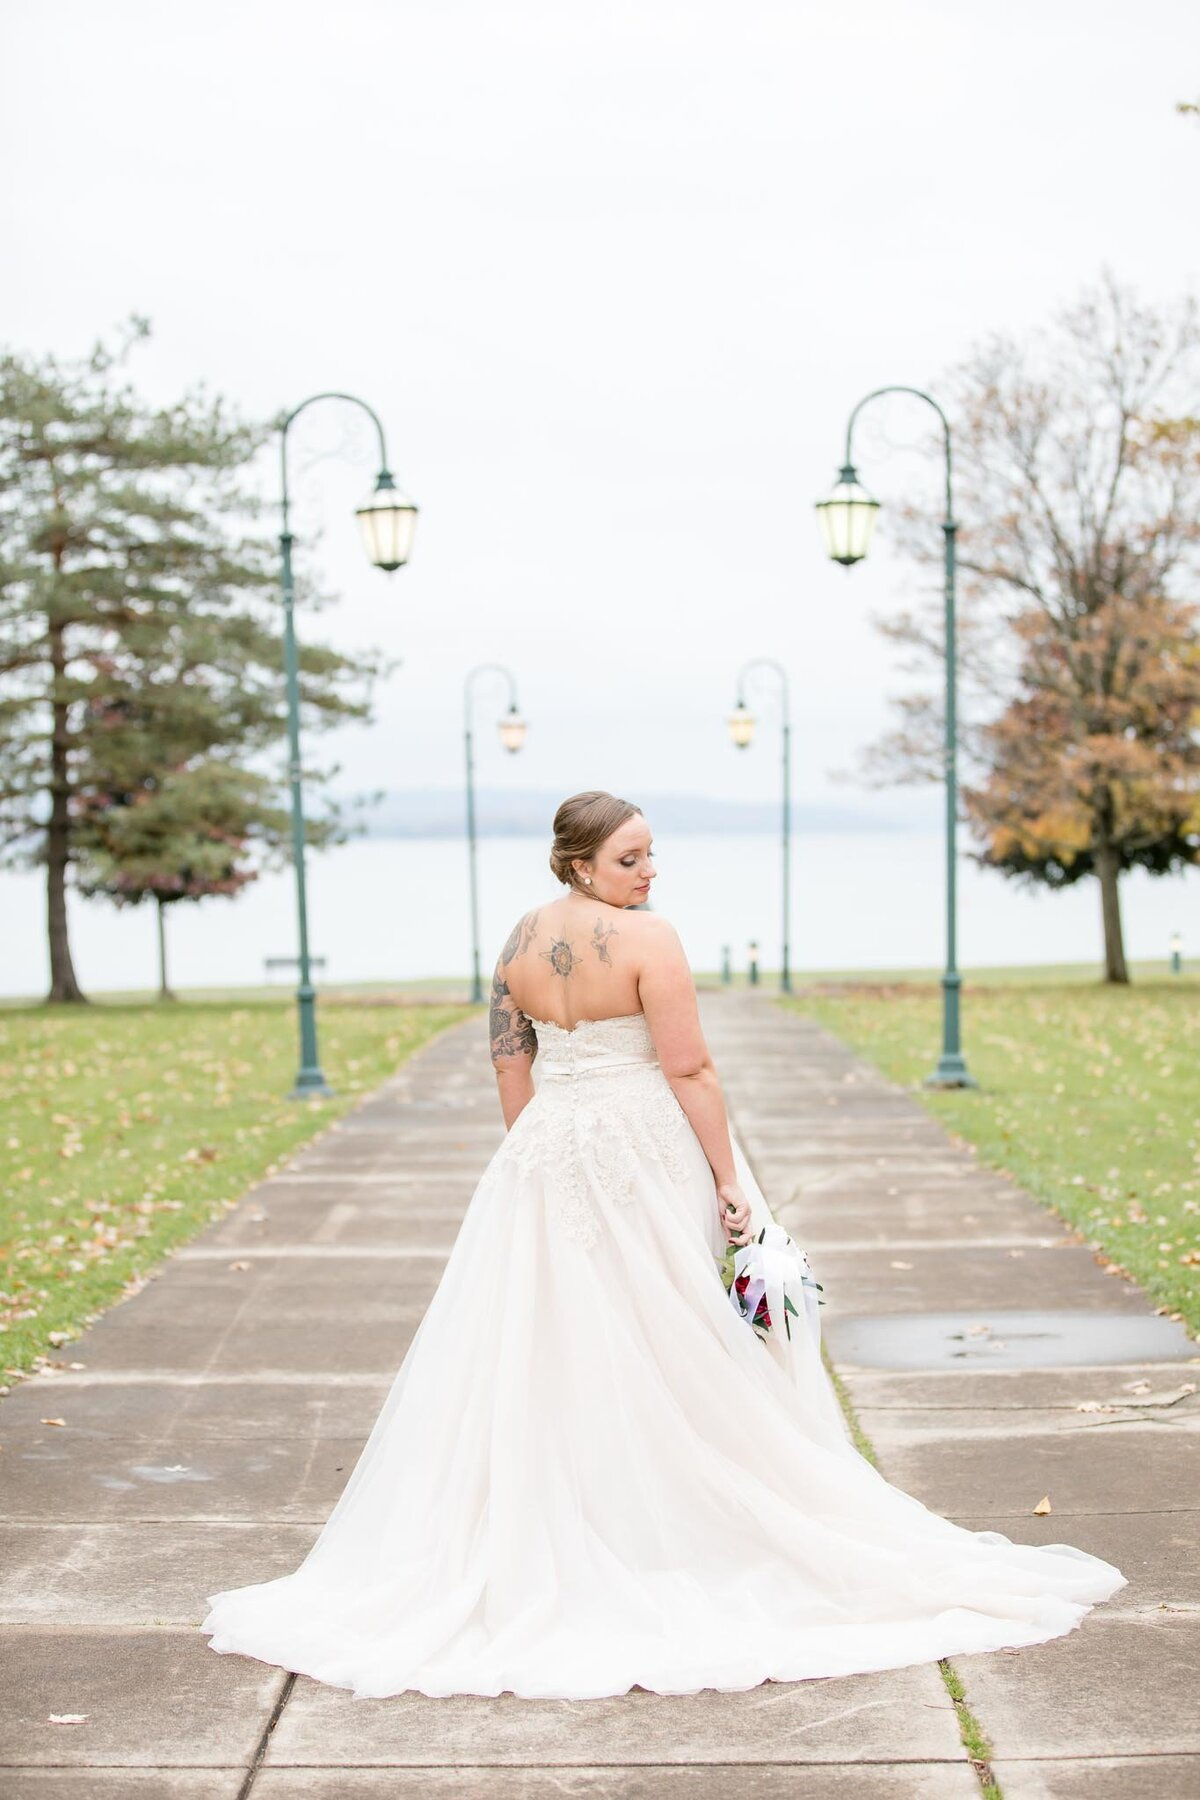 Rachel-Elise-Photography-Syracuse-New-York-Wedding-Photographer-76